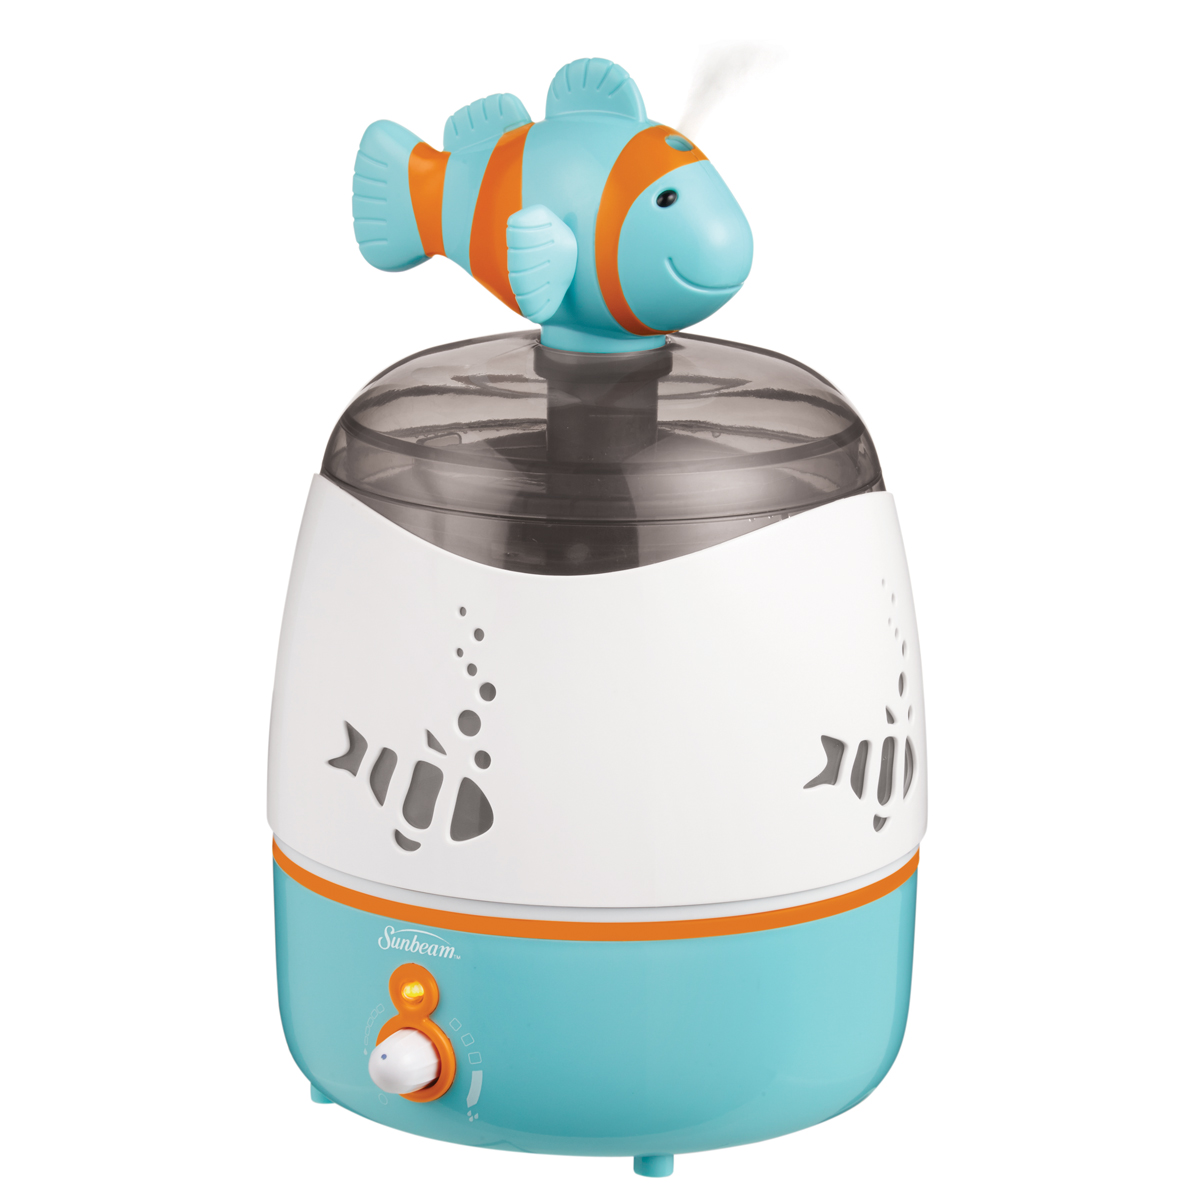 Sunbeam-for-Kids-Ultrasonic-Humidifier-SUL001-CAD-MASTER